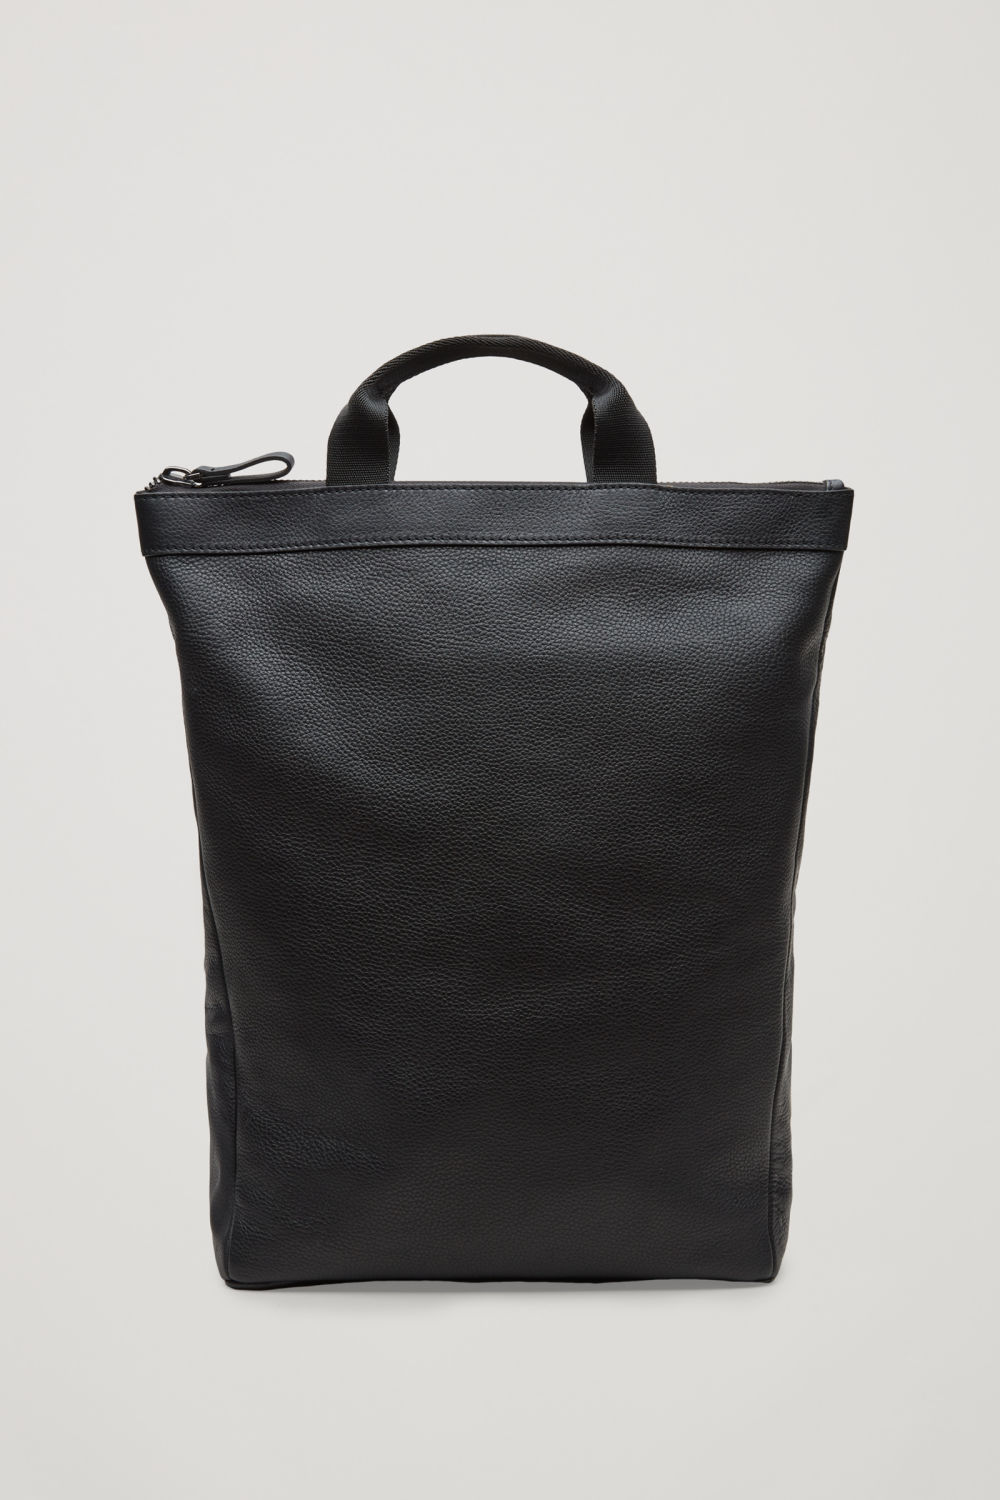 코스 토트백 COS LEATHER TOTE BACKPACK,Black